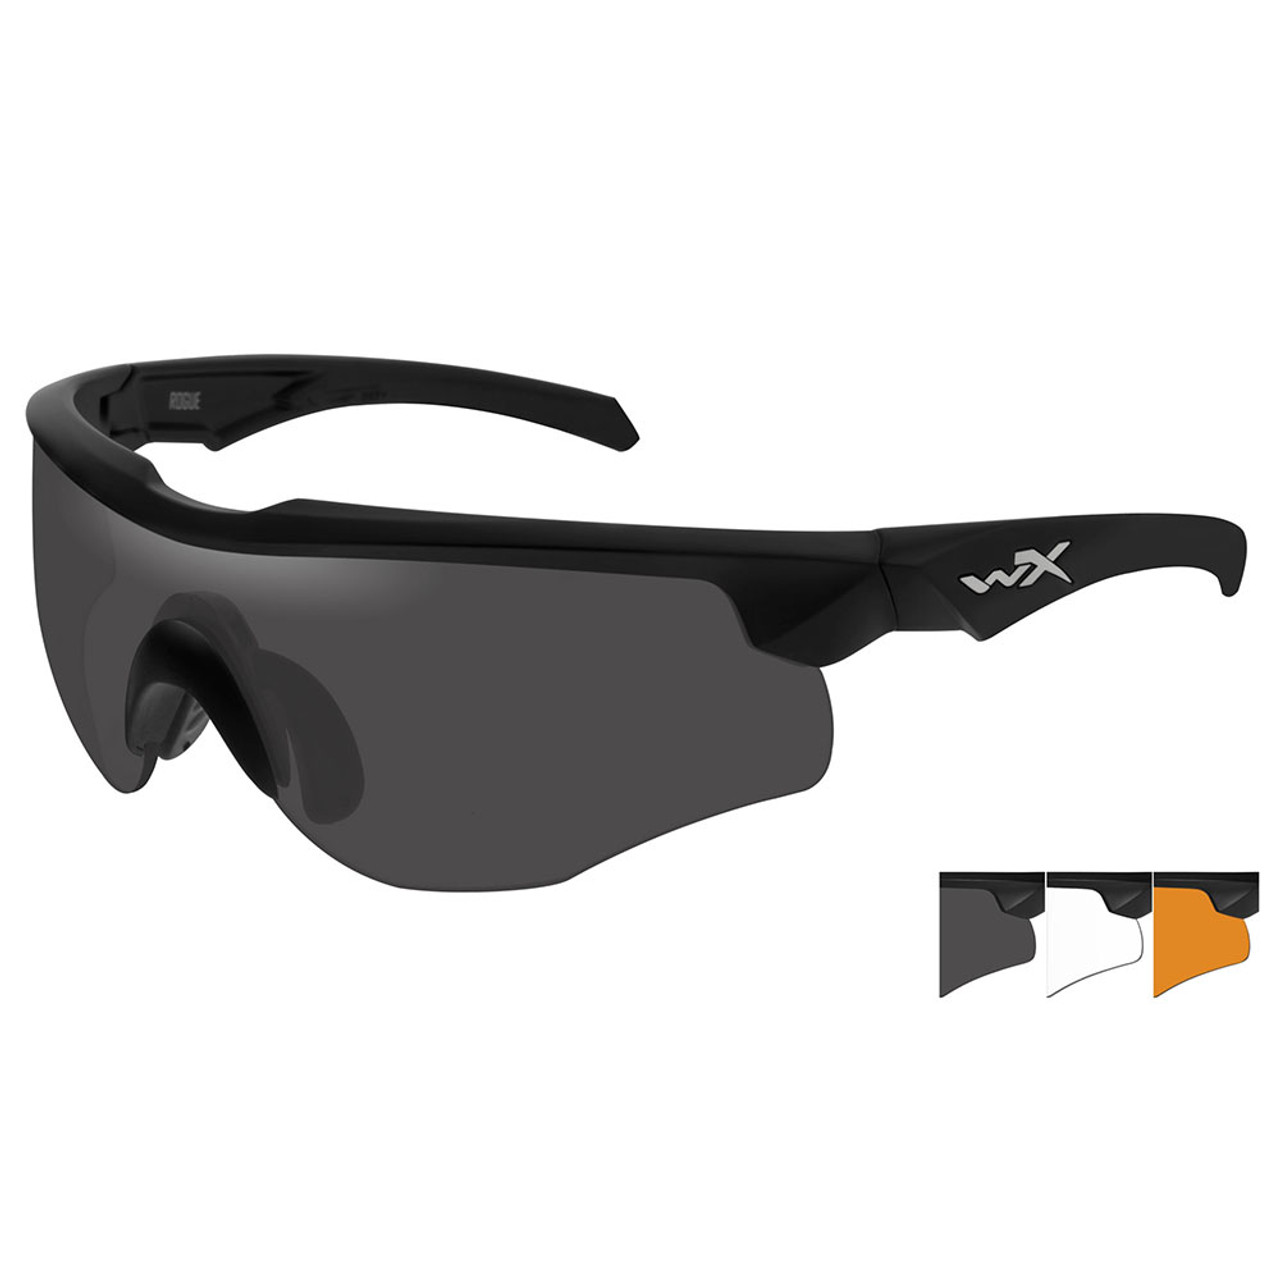 44efa71f73dc Wiley X Rogue | Three Lens w/ Matte Black Frame Comm Temple